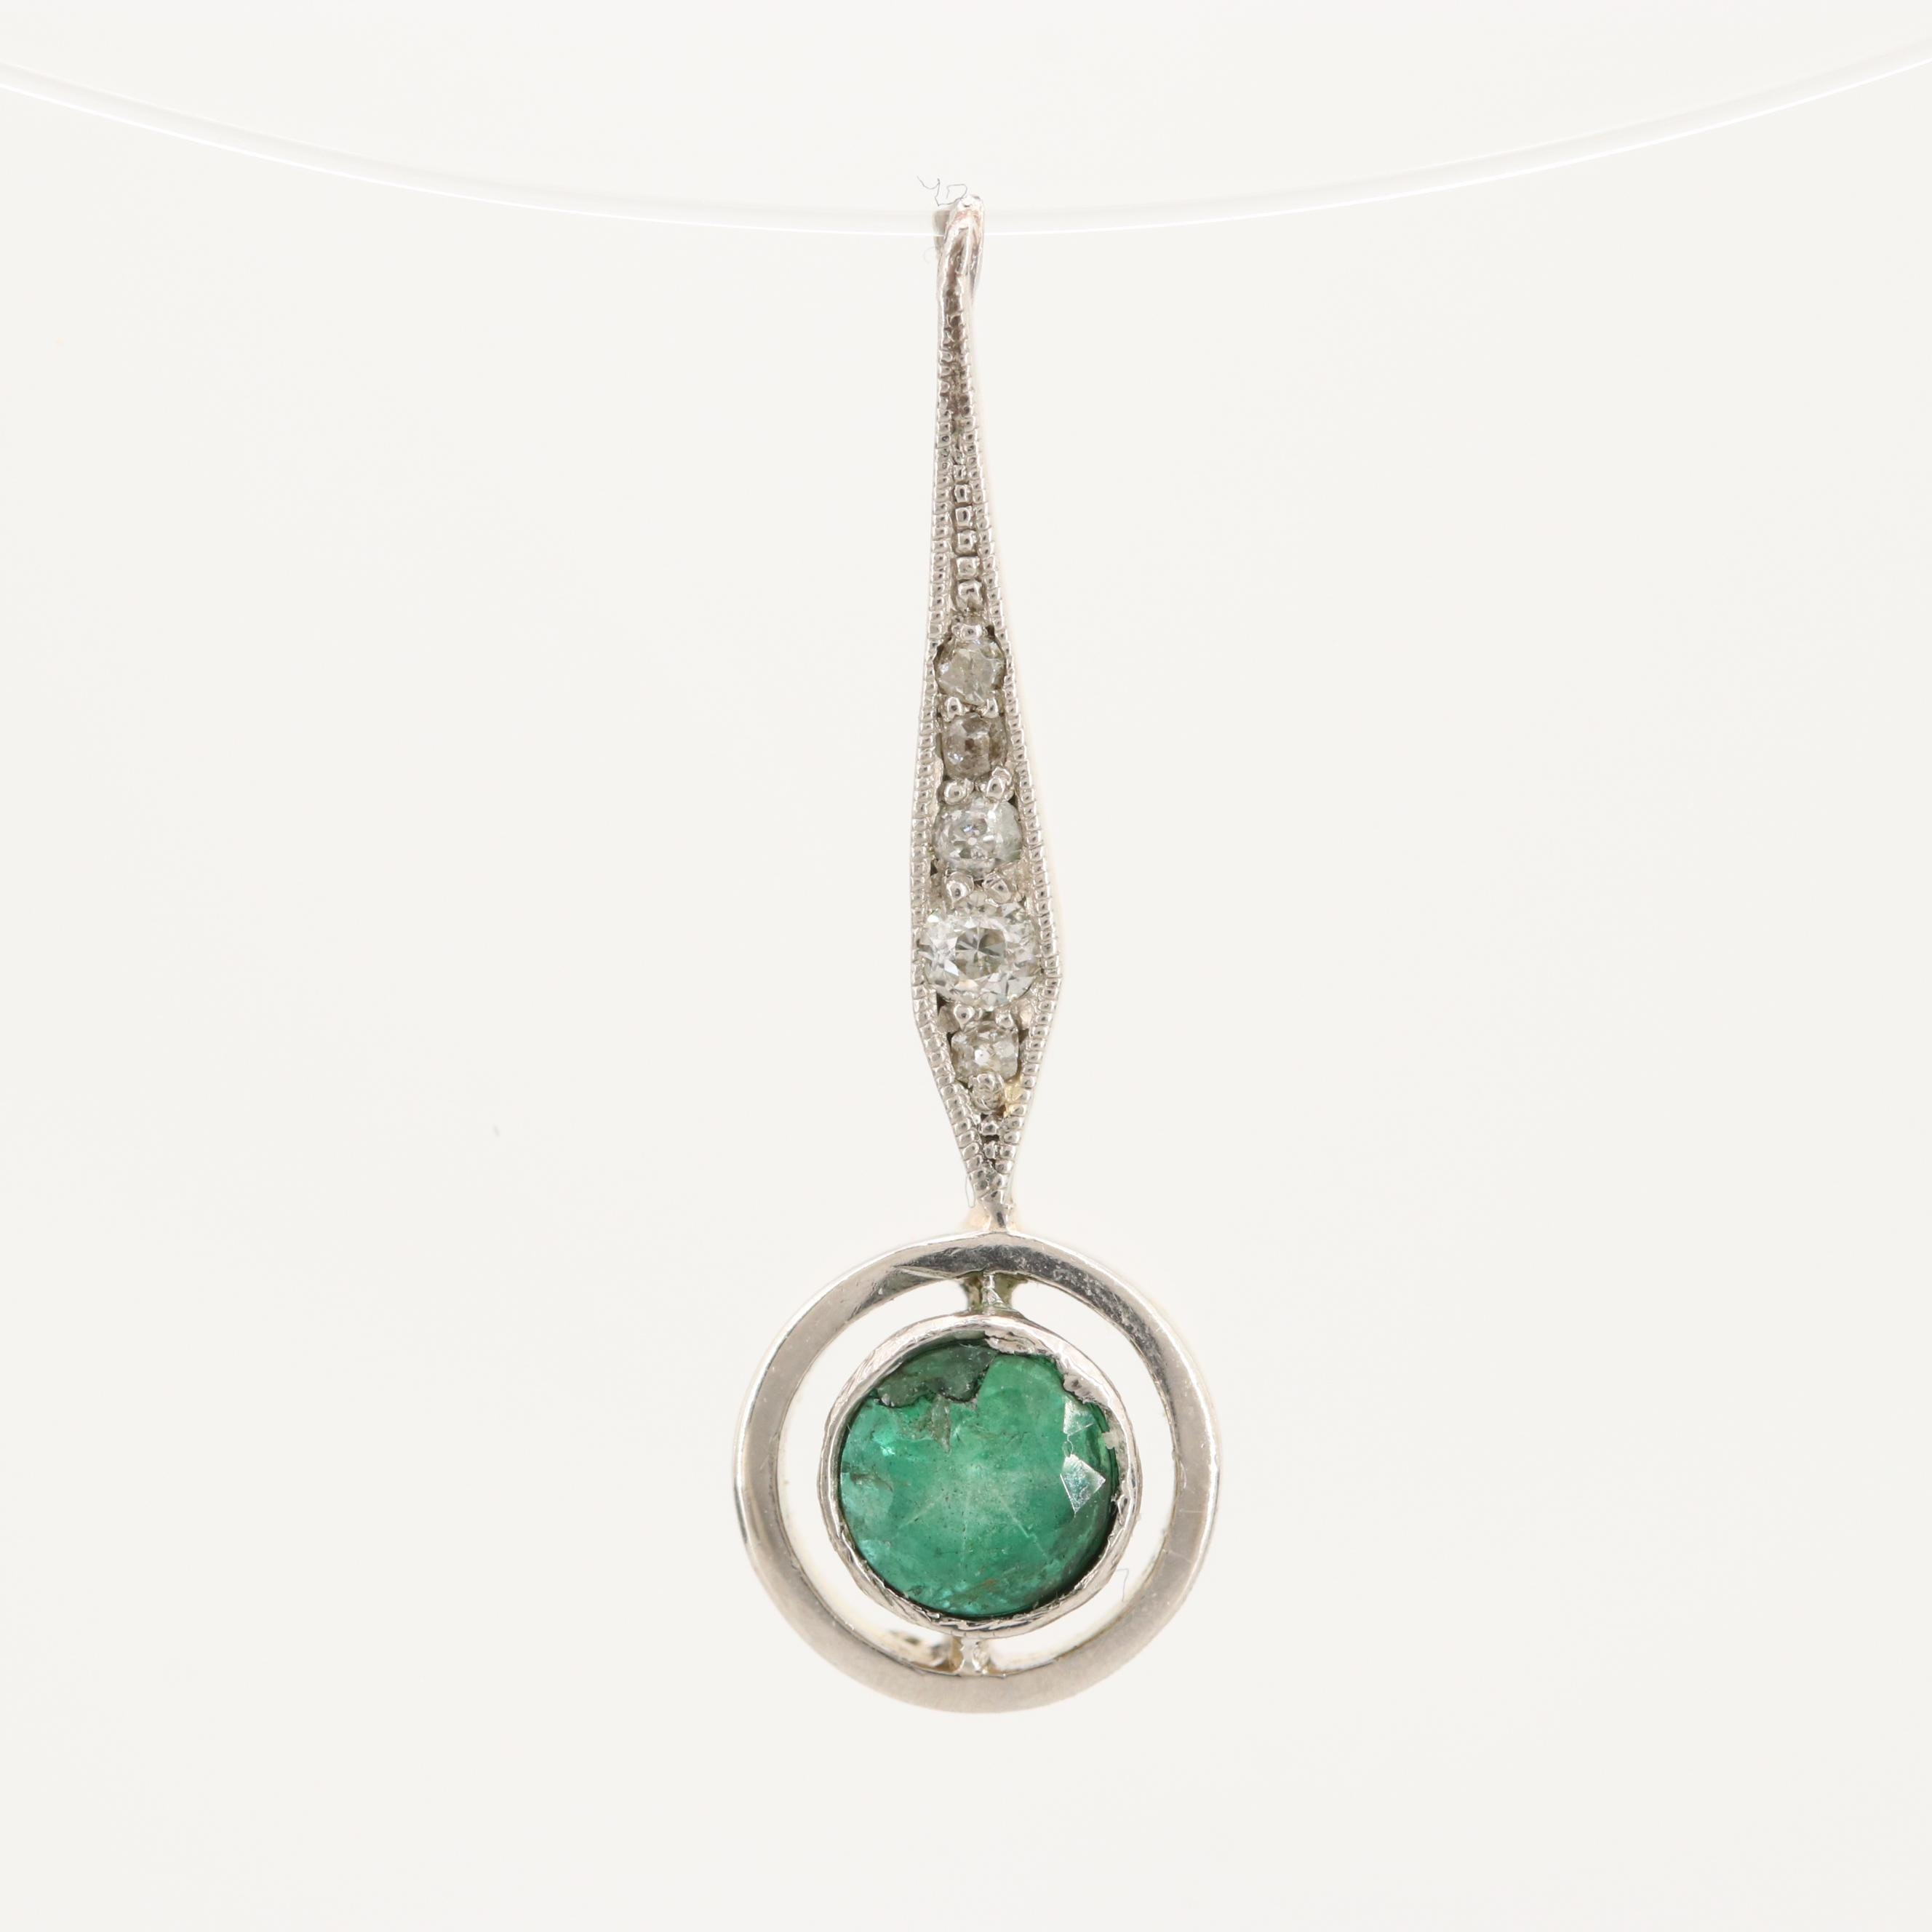 Art Deco 14K Yellow Gold and Platinum Emerald and Diamond Pendant